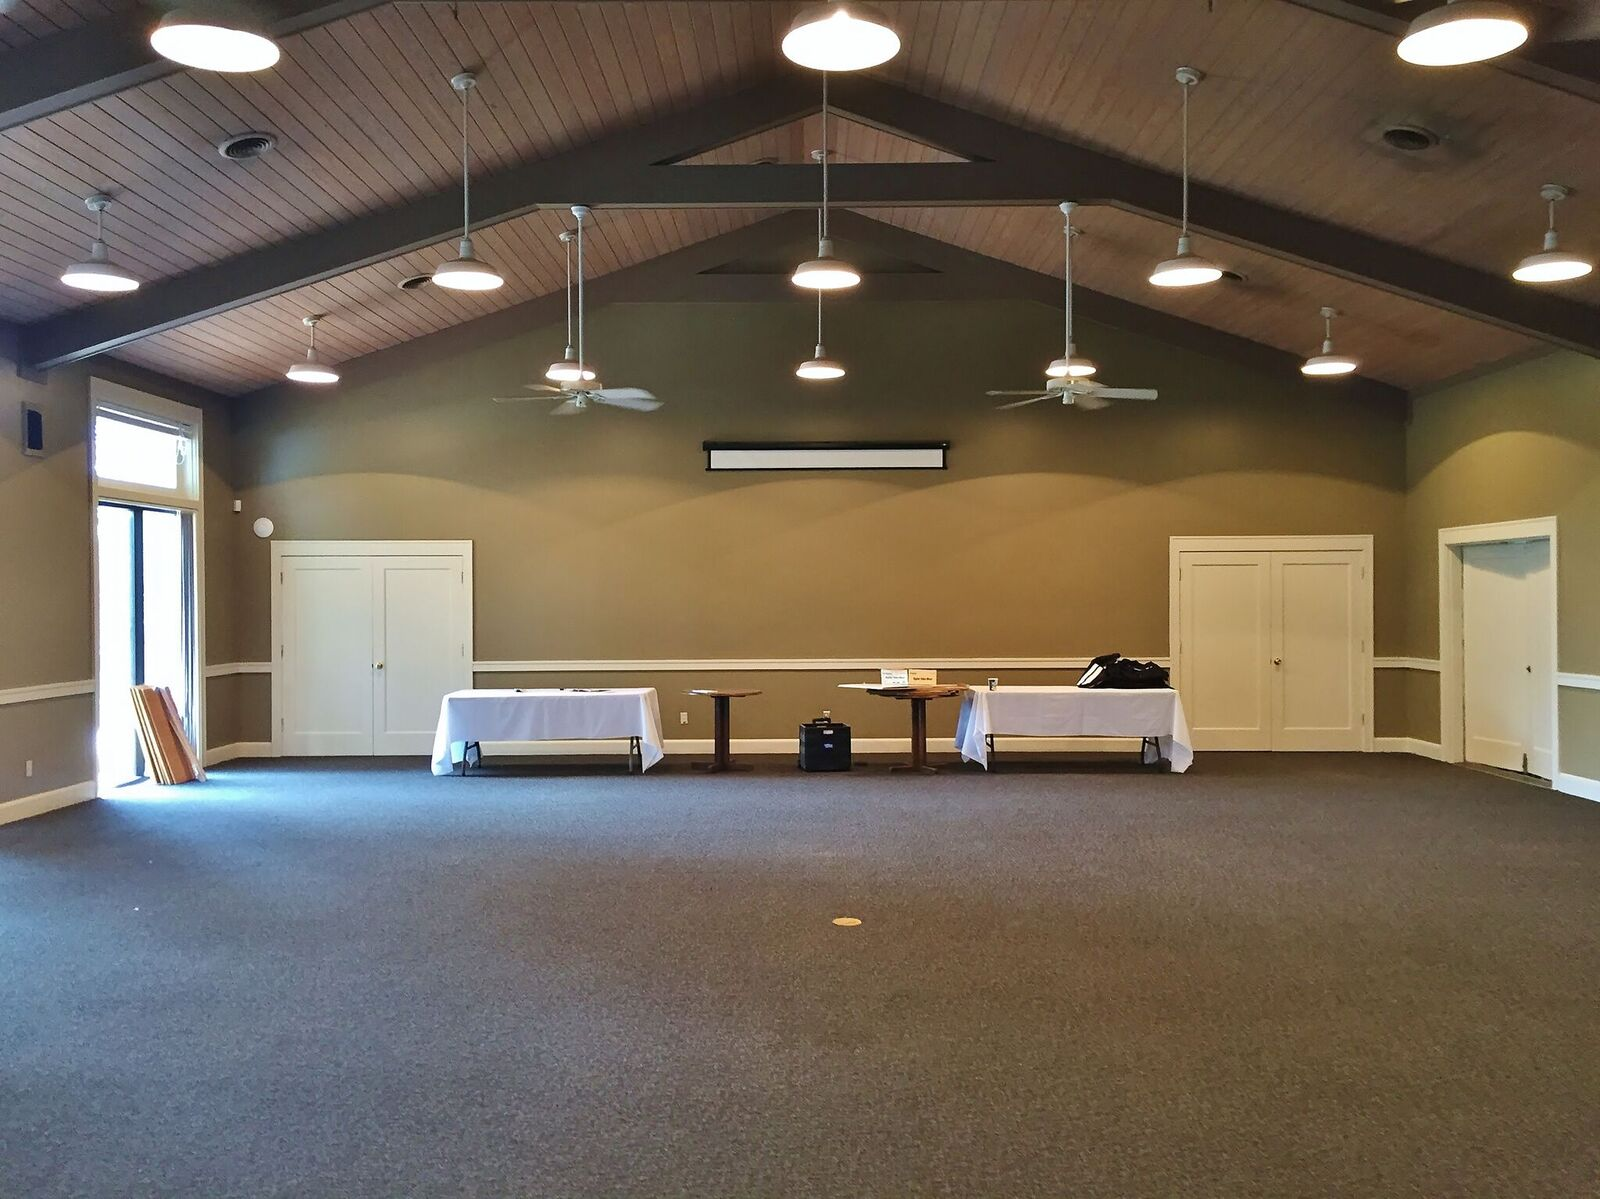 Commercial painting by CertaPro Painters in New Braunfels, TX